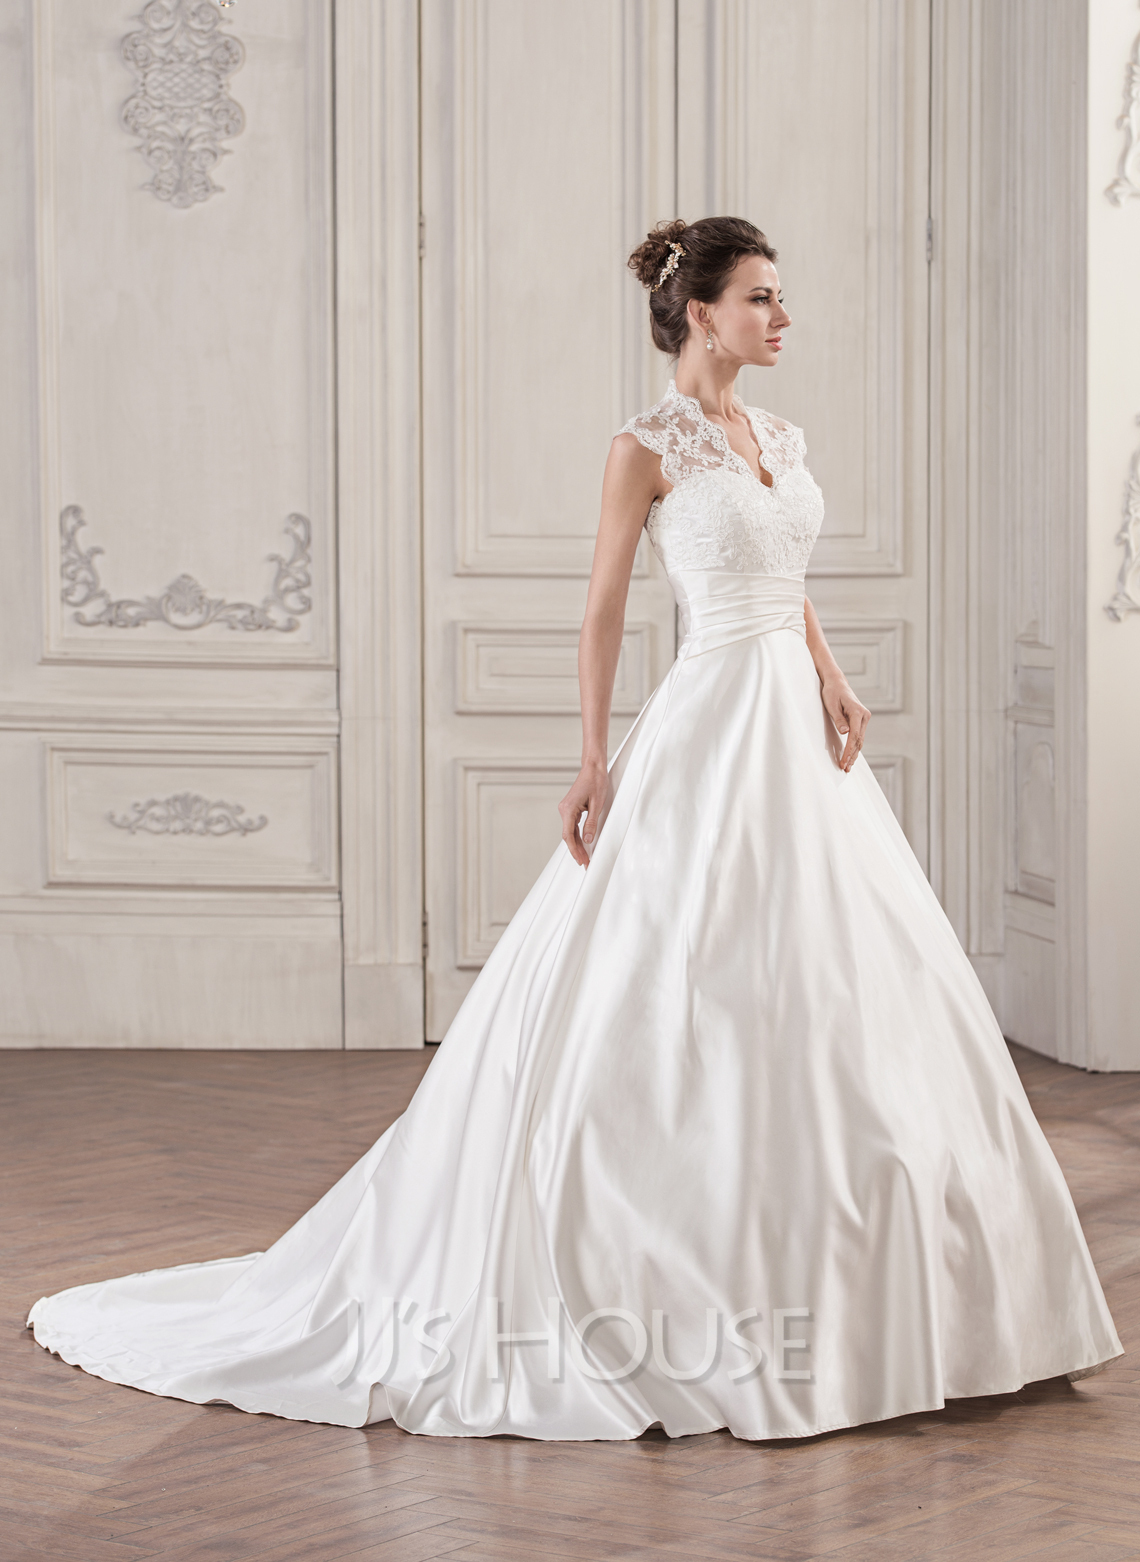 a46f93935134 Ball-Gown V-neck Court Train Satin Lace Wedding Dress With Ruffle. Loading  zoom